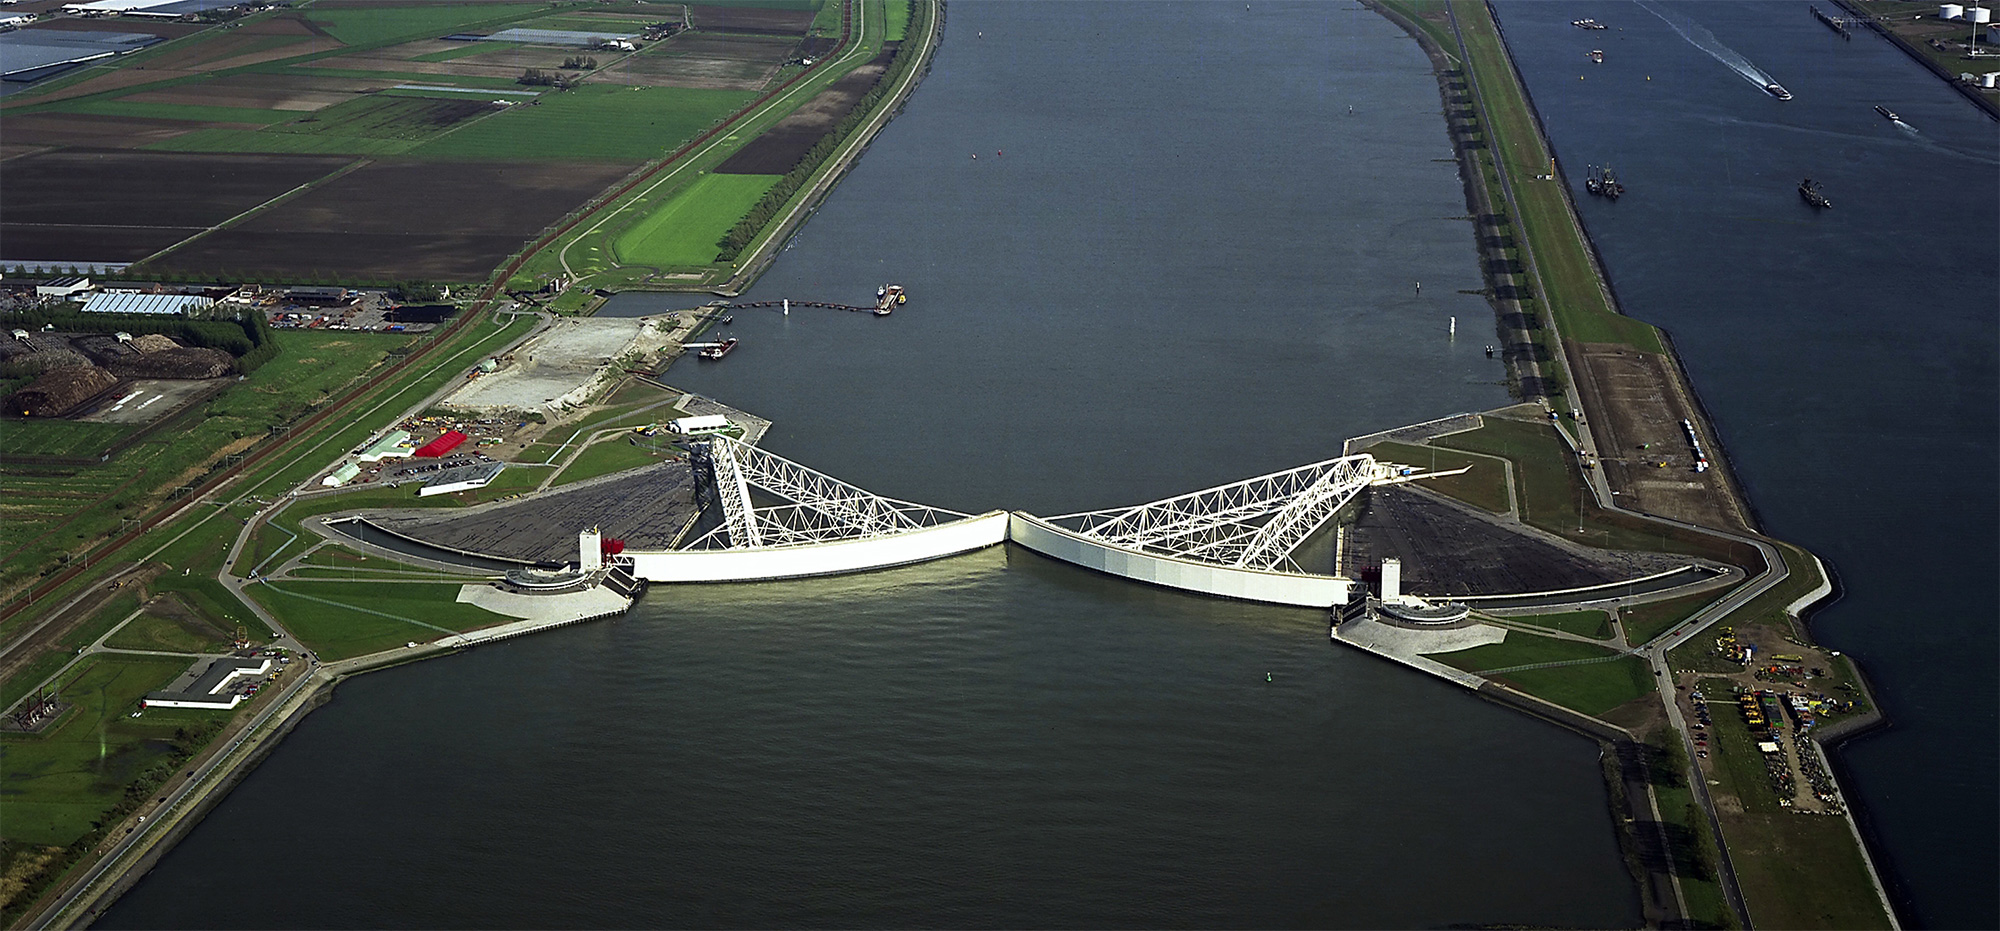 The Netherlands: Fertile ground for innovation